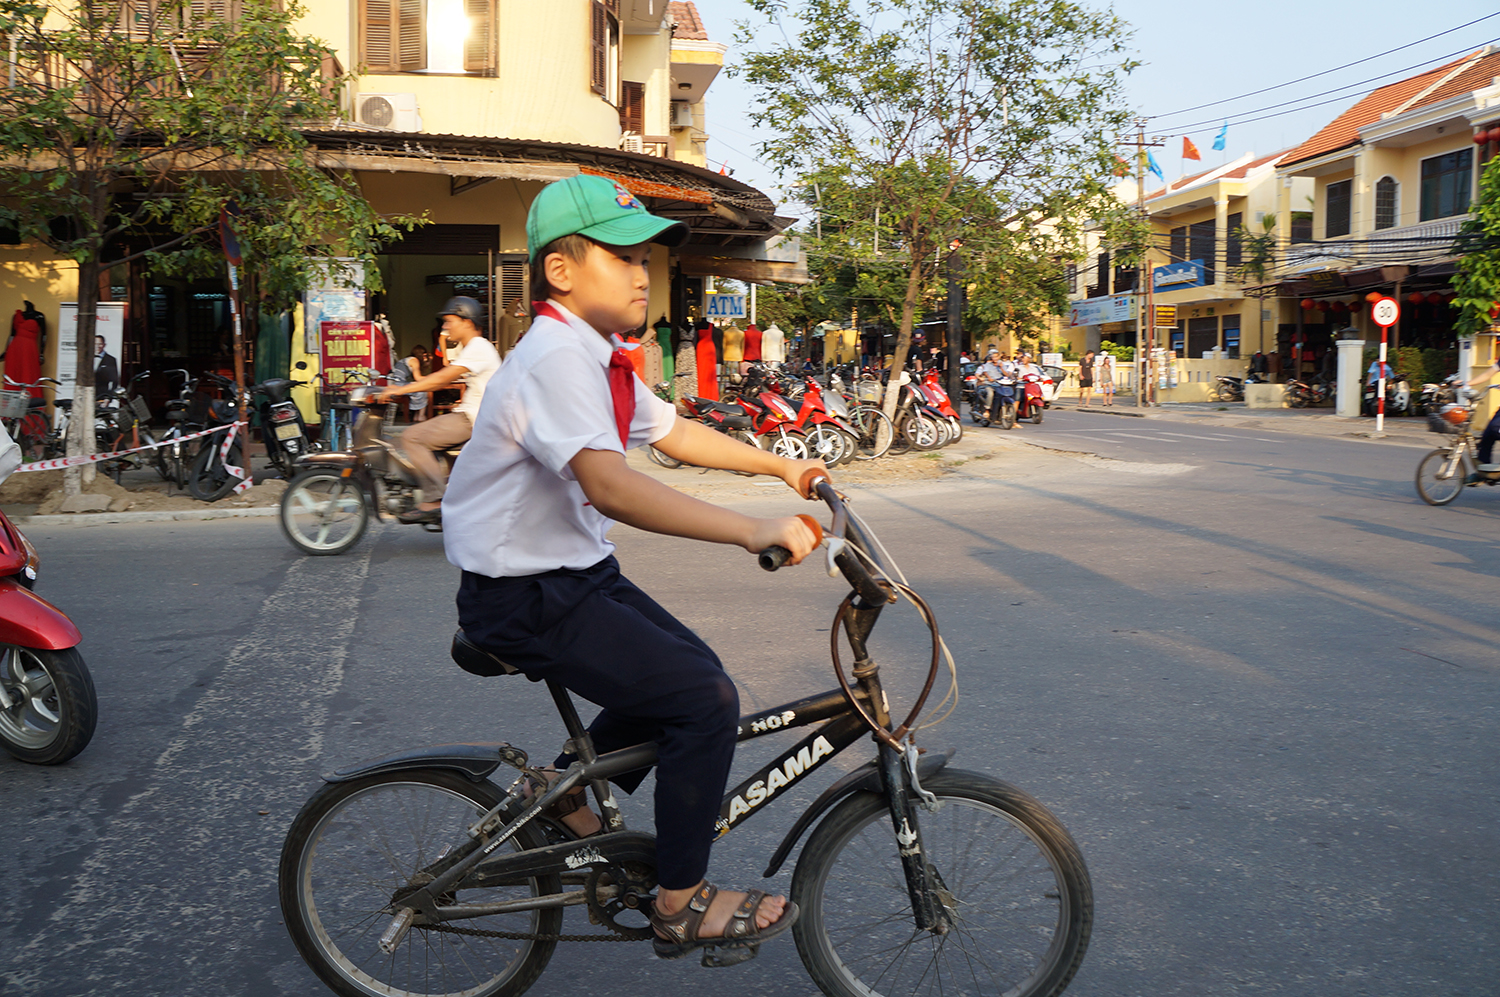 Hoi at school boy on bike